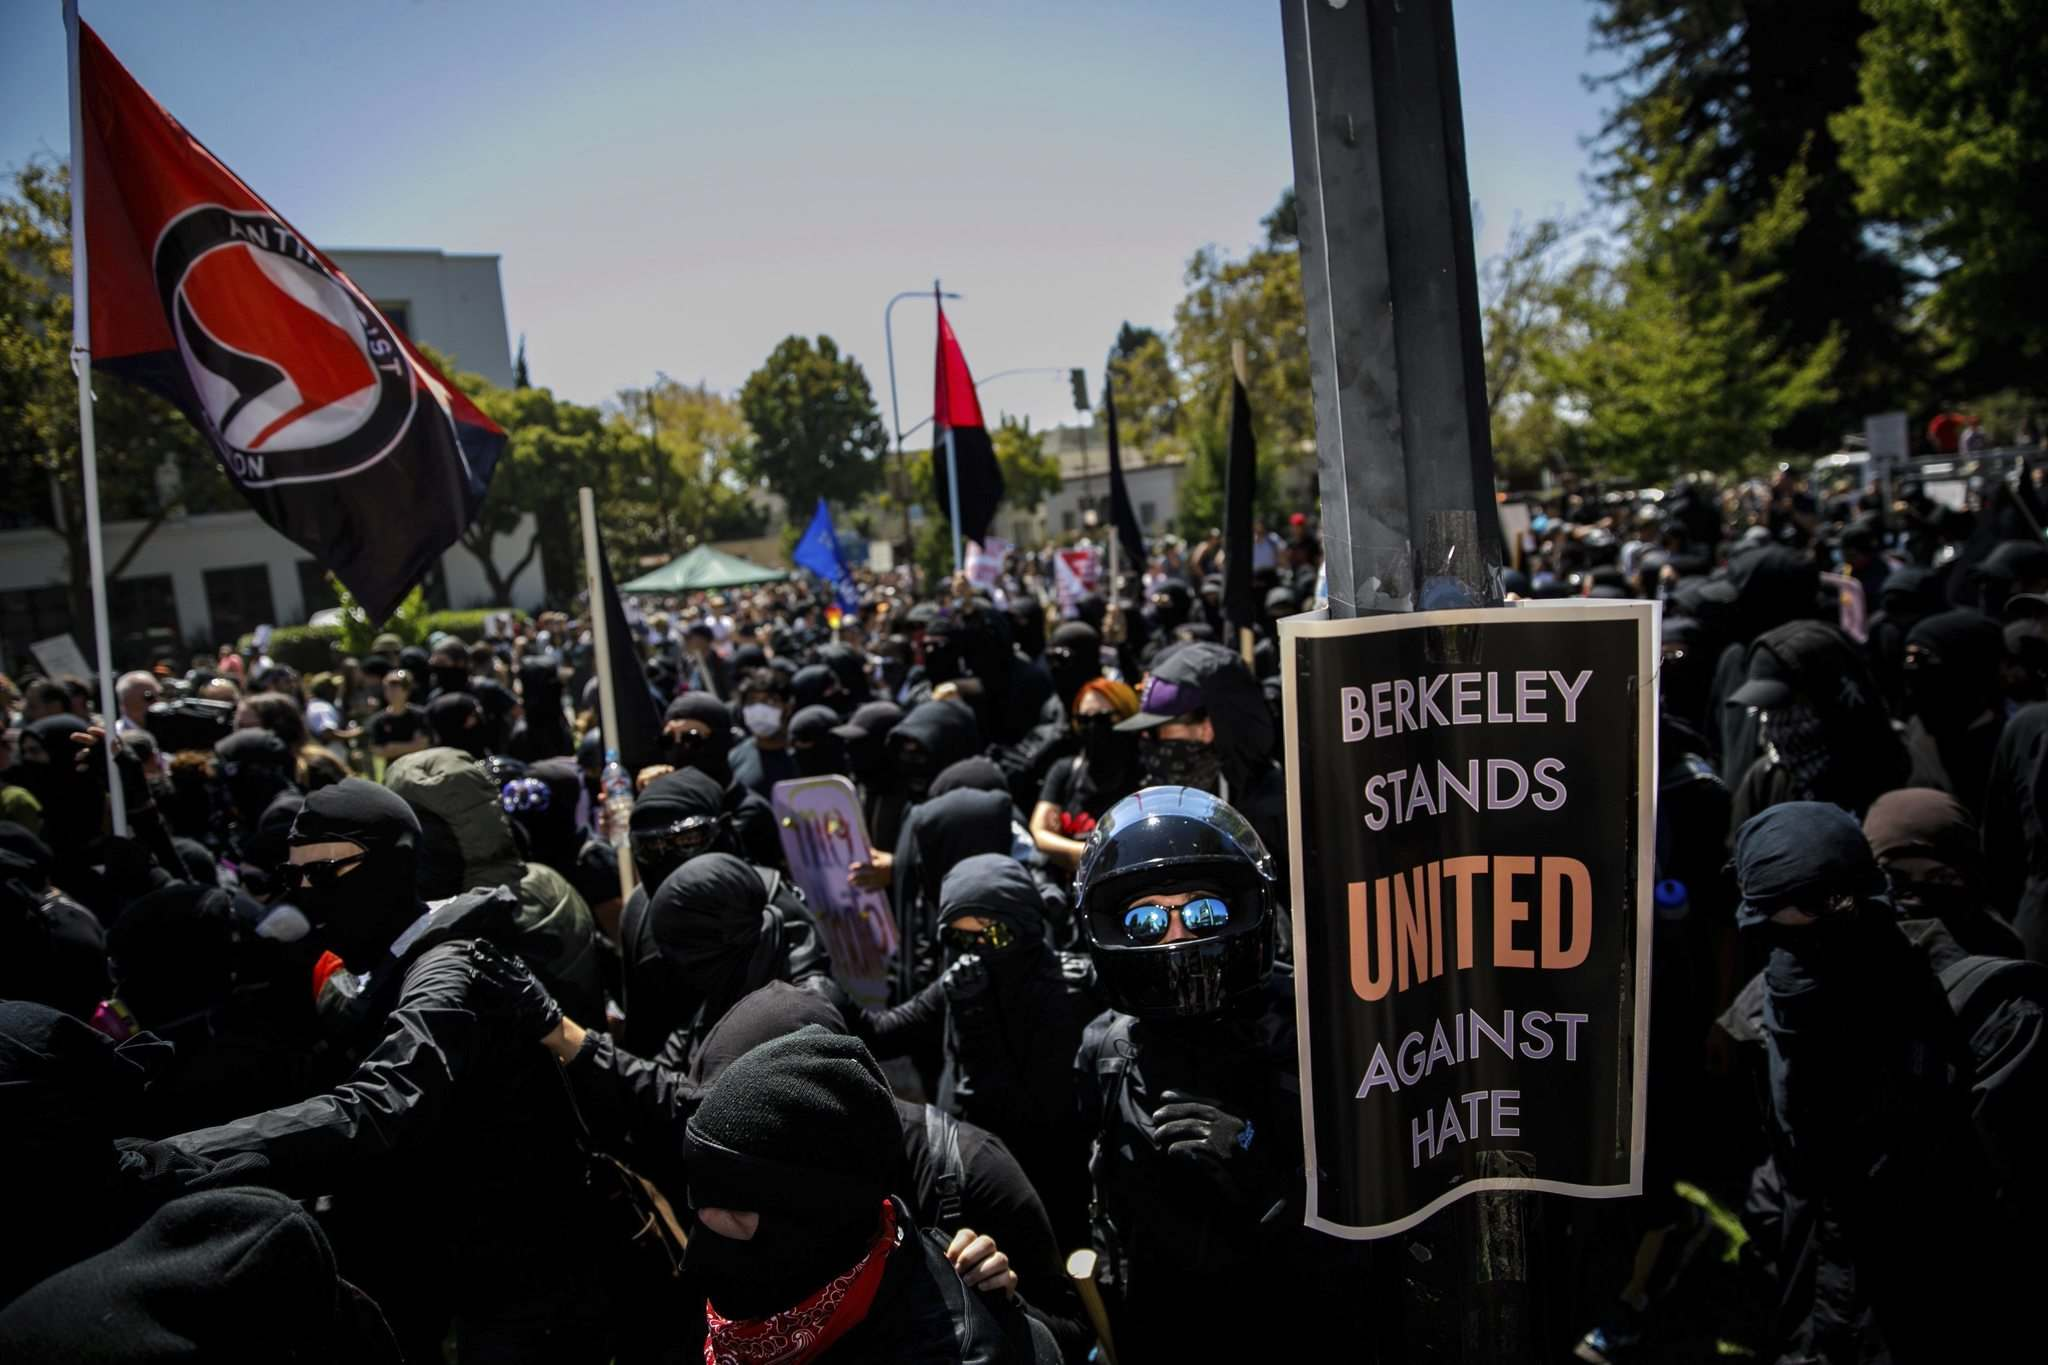 Marcus Yam / Los Angeles Times</p><p>Members of the black bloc march into Martin Luther King Park after police officers retreated during a day full of protests in Berkeley, Calif., on Aug. 27.</p>